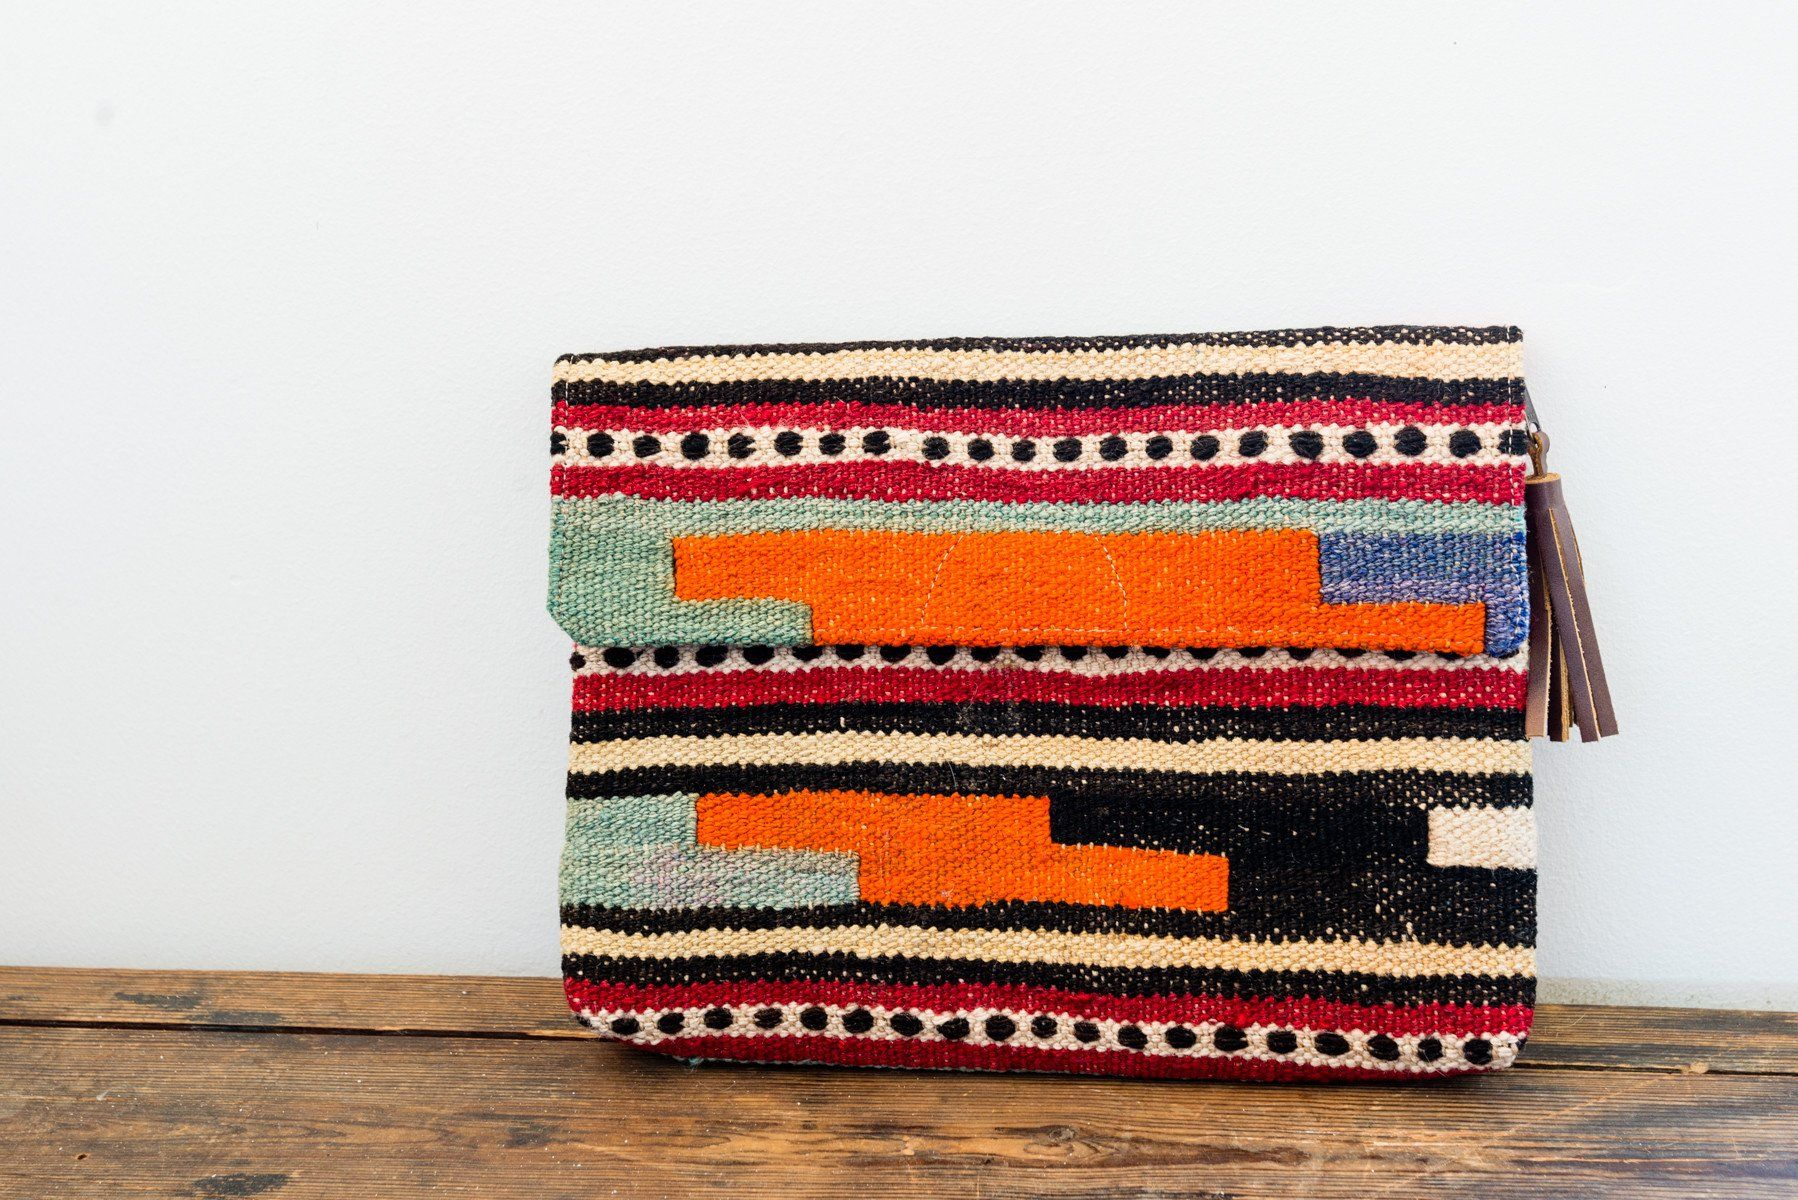 """This double-sided clutch has a fold over flap. This clutch is the perfect blend of classic and modern. It can be used as a clutch or a purse. Brought to us by Togar Rugs itwas handmade in Istanbul, Turkey from a Kilim rug. Each purse is one of a kind! For more on Togar Rugs and how it was madeclick here. Dimensions: 11"""" long x 7.5"""" tall x 3"""" wide Wool from Kilim Rug on both sides Handmade"""